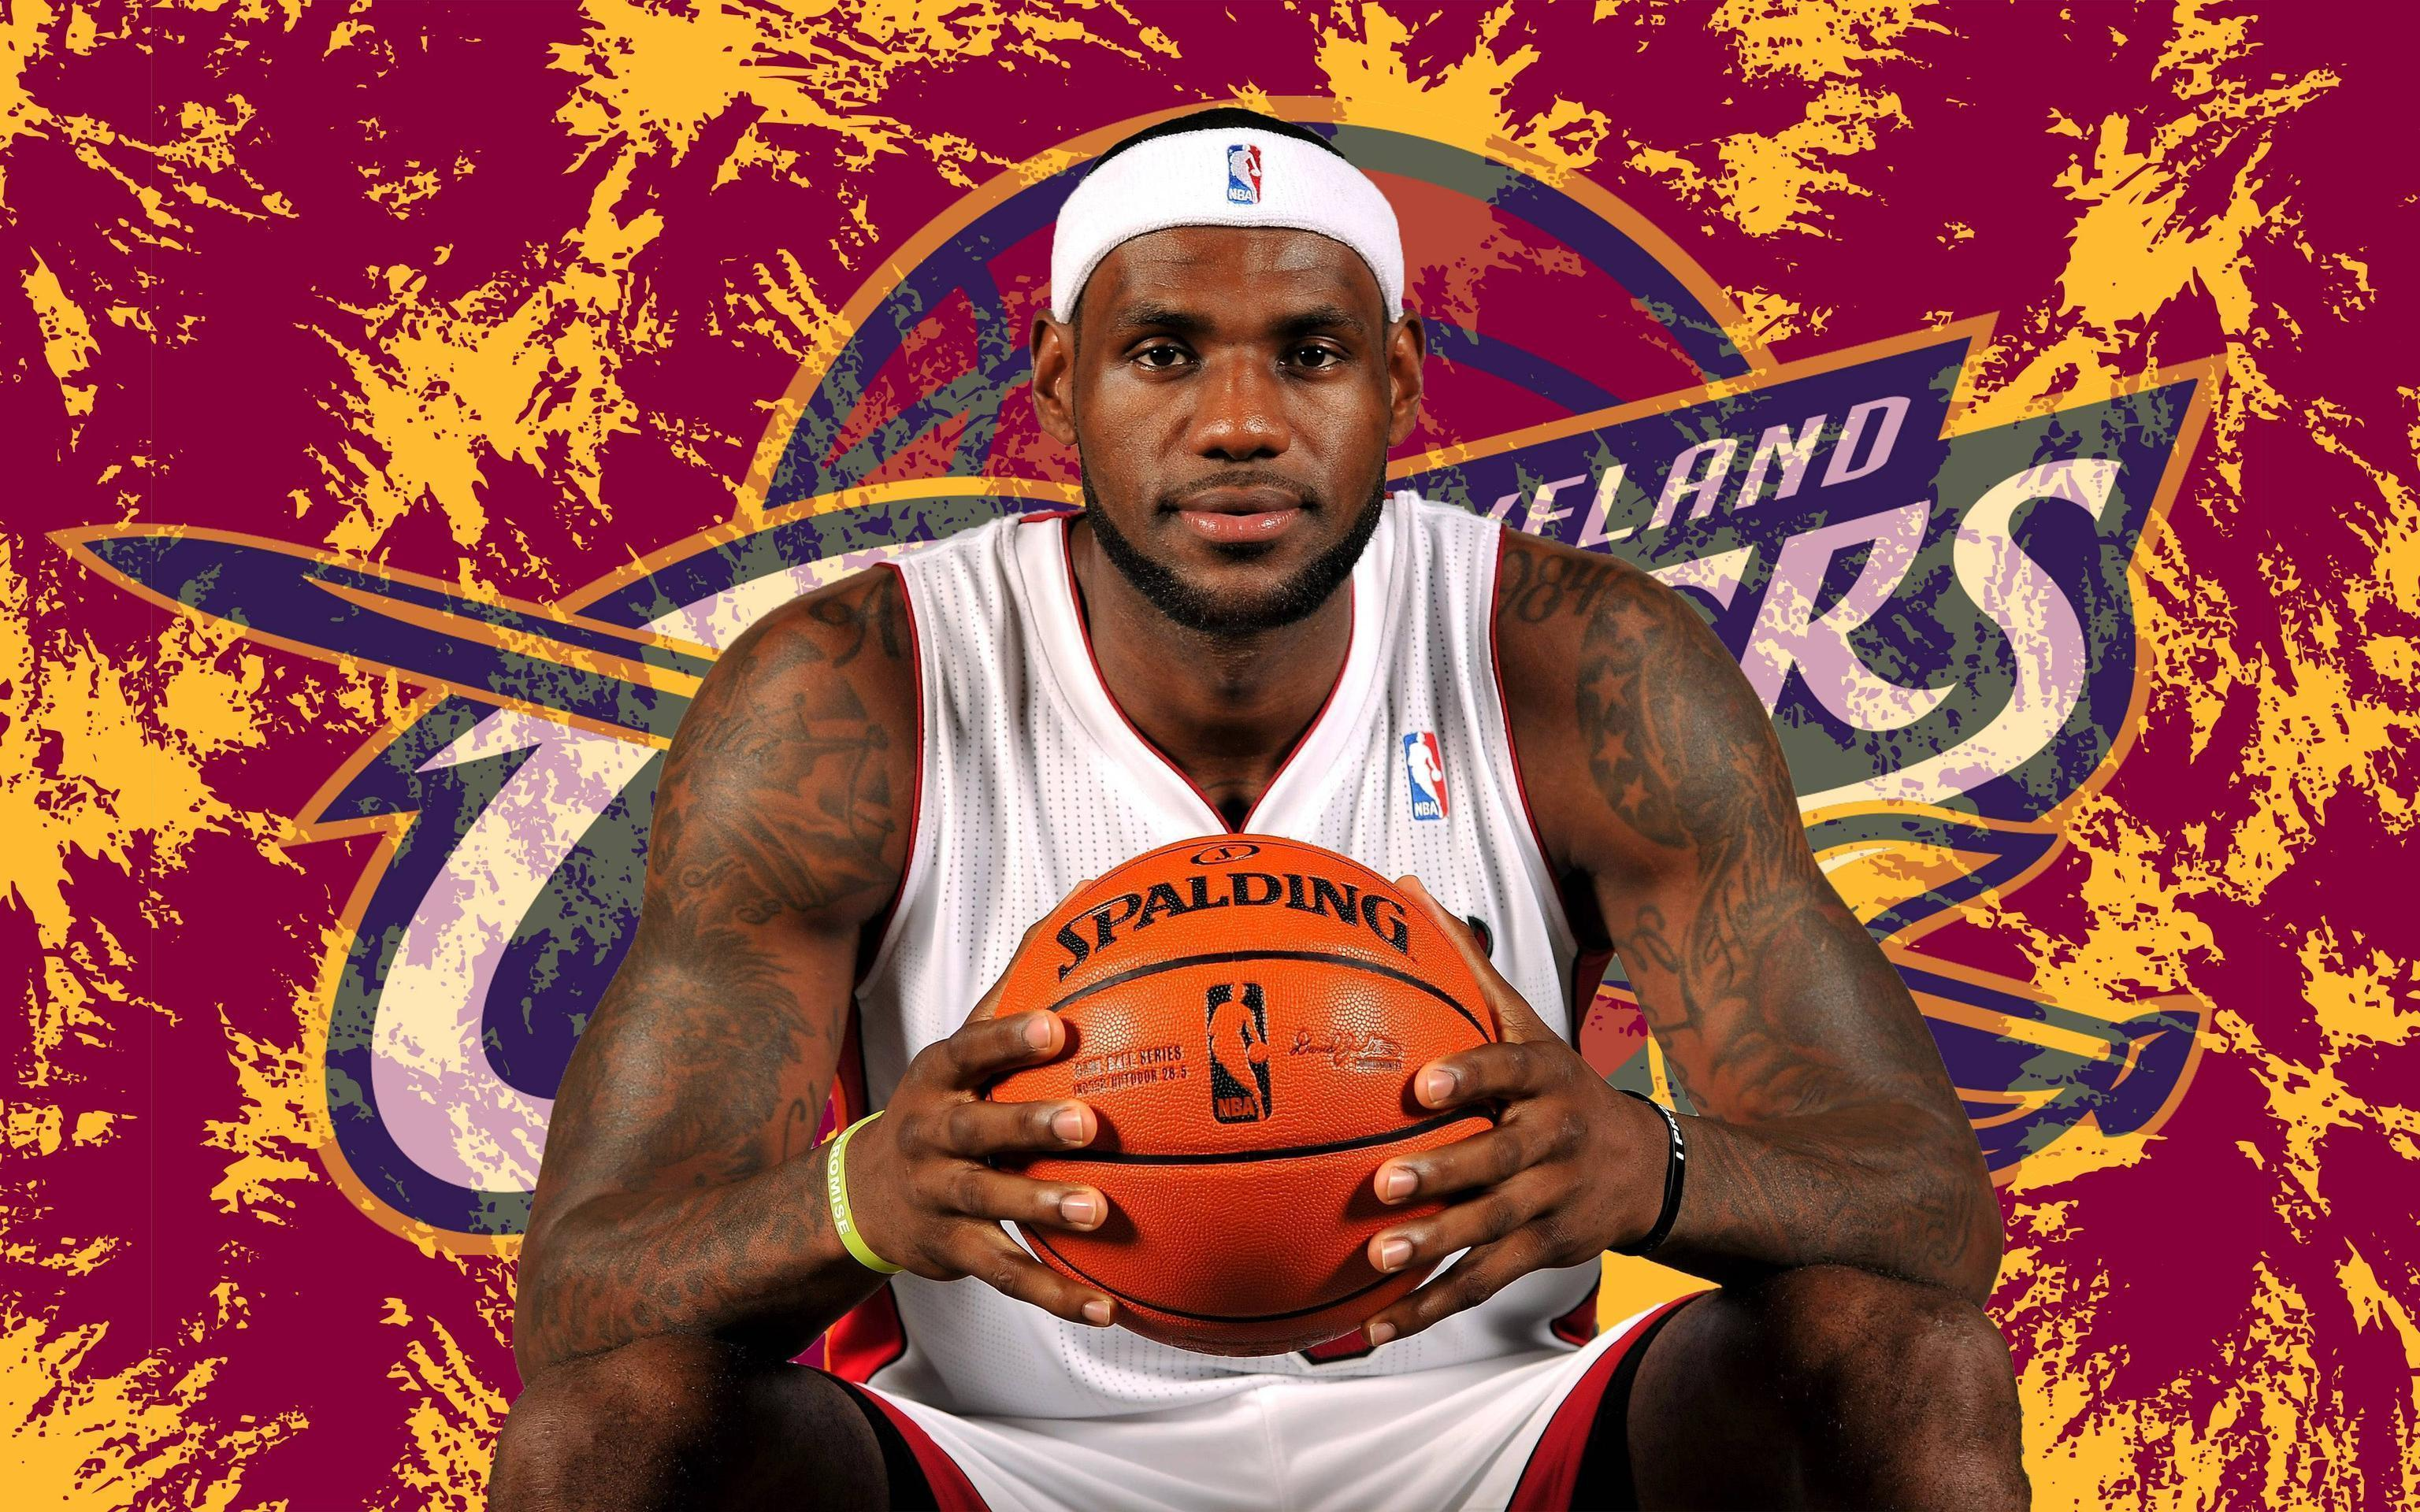 Nba wallpapers lebron james 2015 wallpaper cave - Cleveland cavaliers wallpaper ...